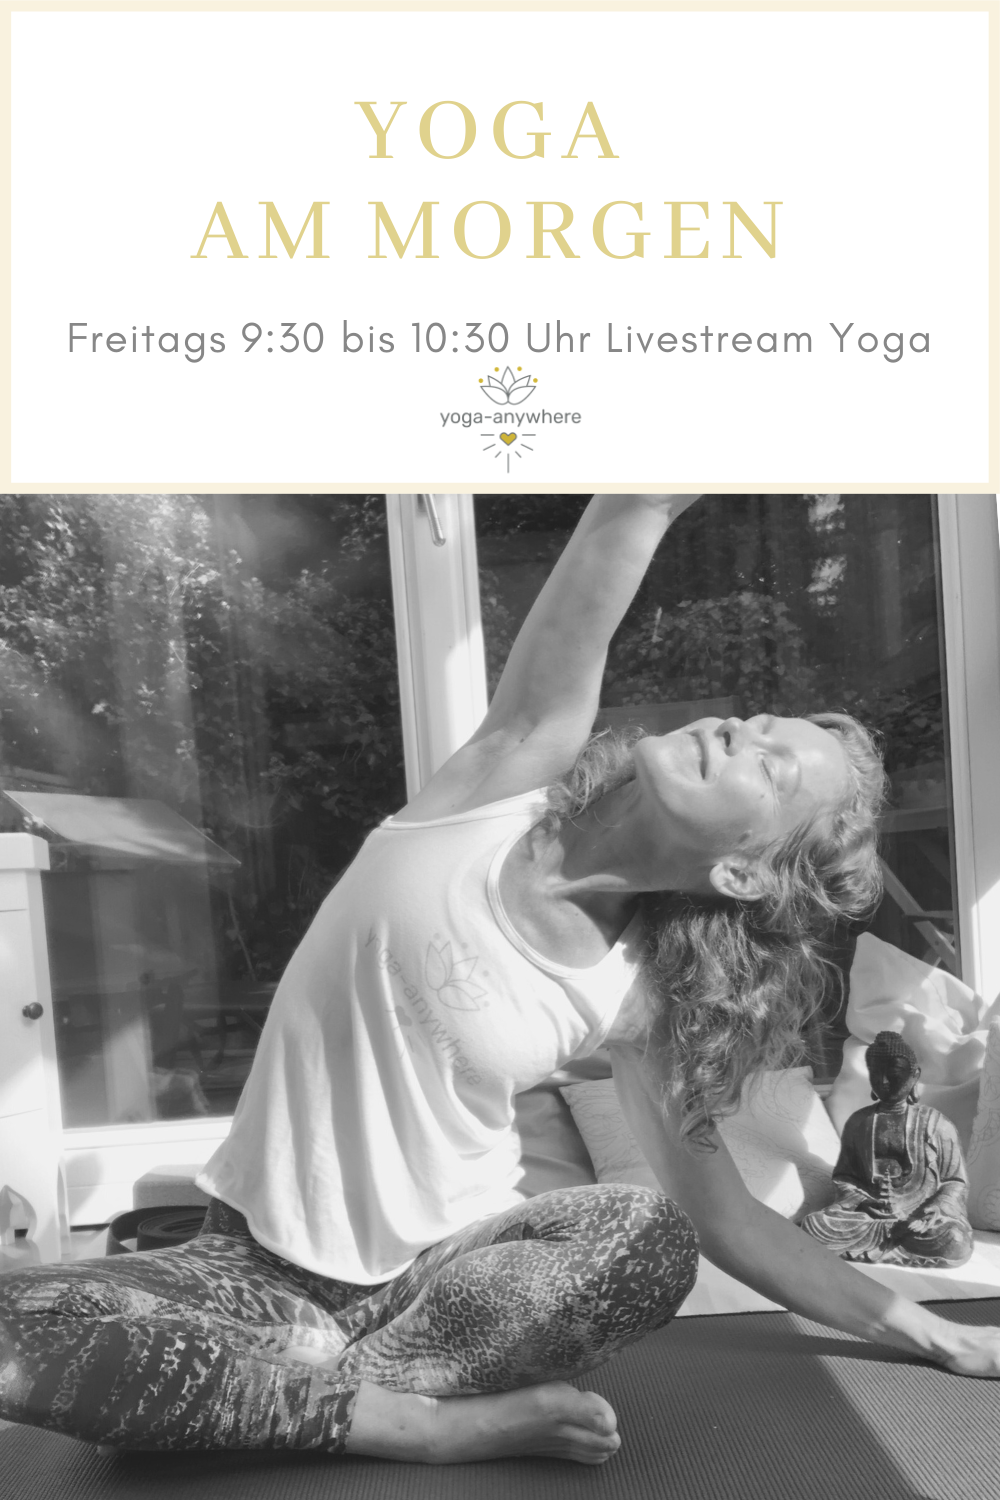 Yoga am Morgen Livestream